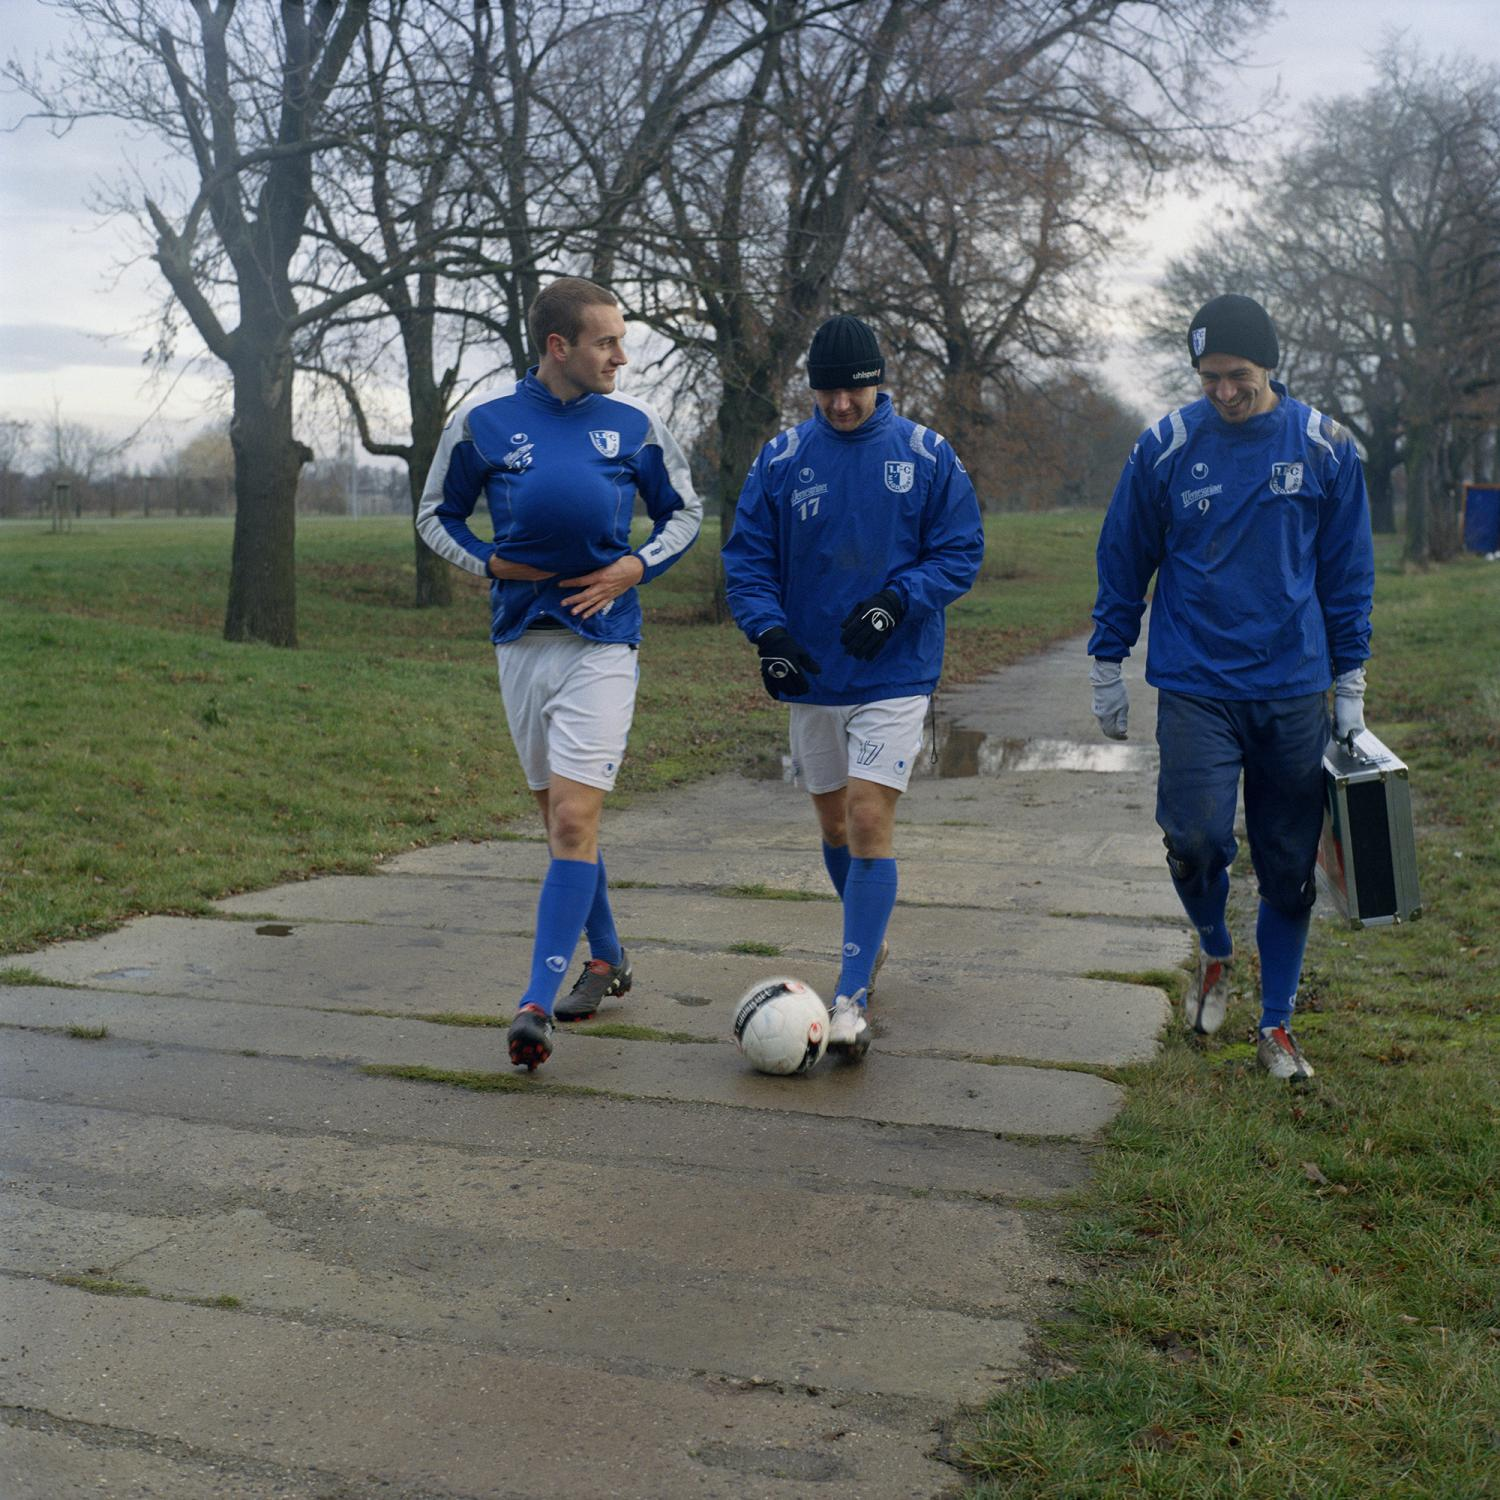 The players Tobias Friebertshäuser (25, L), Marcel Probst (17, C) and Marko Verkic (9, R) walk to the changing room after a training of the 1. FC Magdeburg team, in Magdeburg.